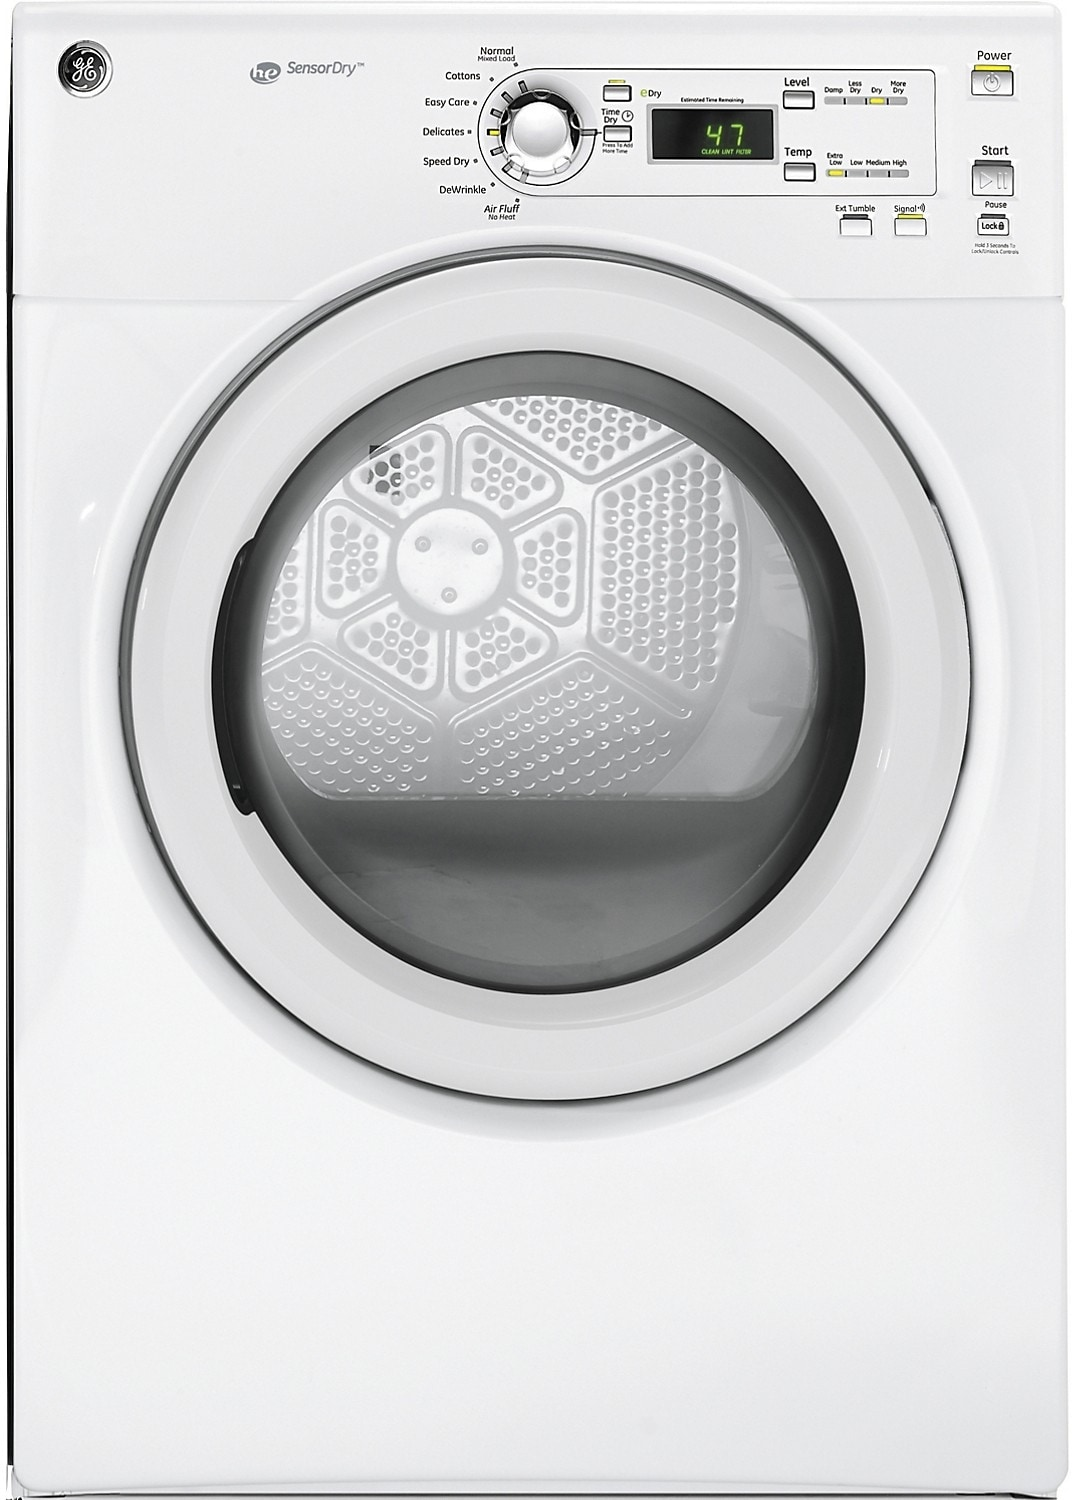 Washers and Dryers - GE 7.0 Cu. Ft. Electric Dryer - White